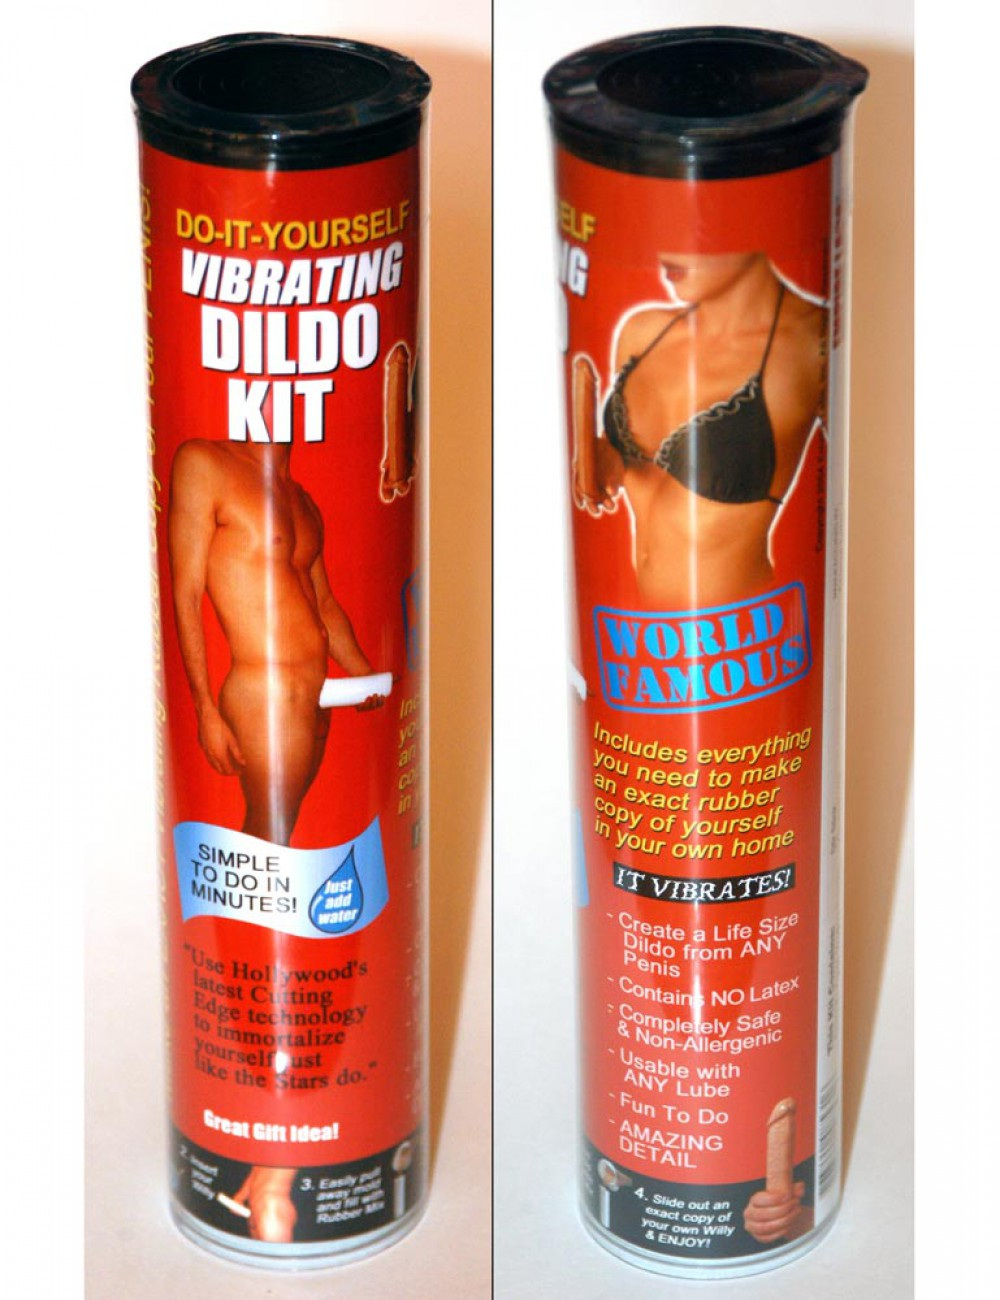 Clone-A-Willy Dildo Making Kit